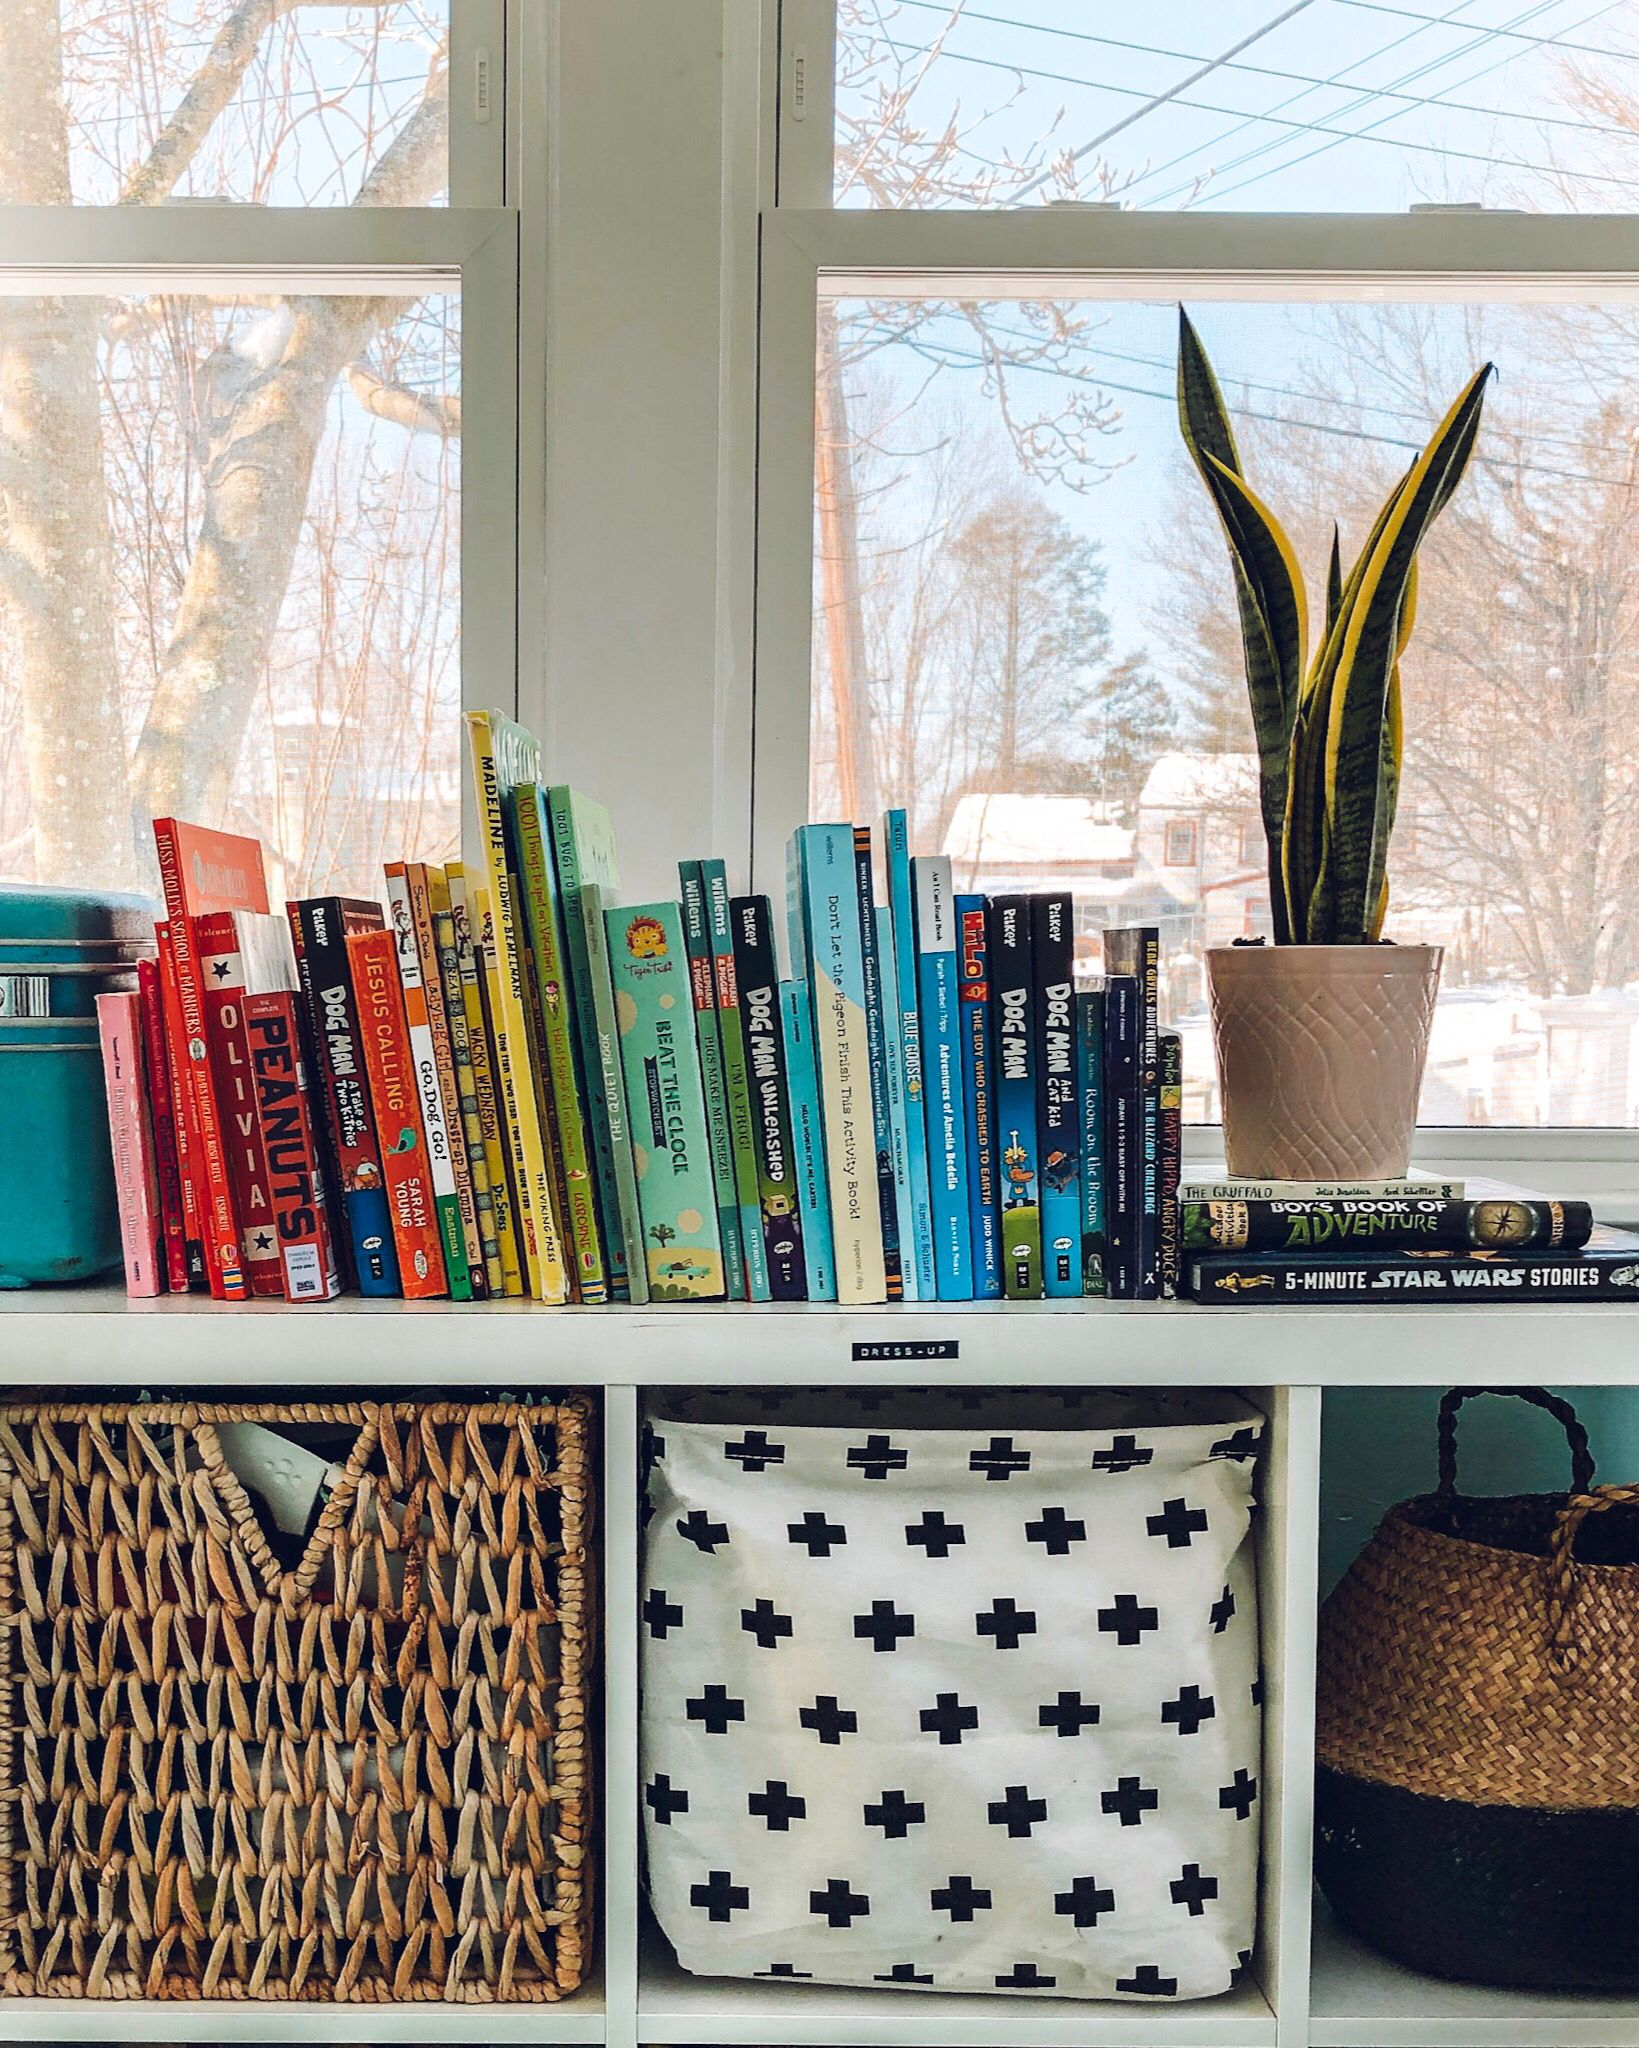 Pin By Katie Bowling On Playrooms In 2019 | Playroom Storage